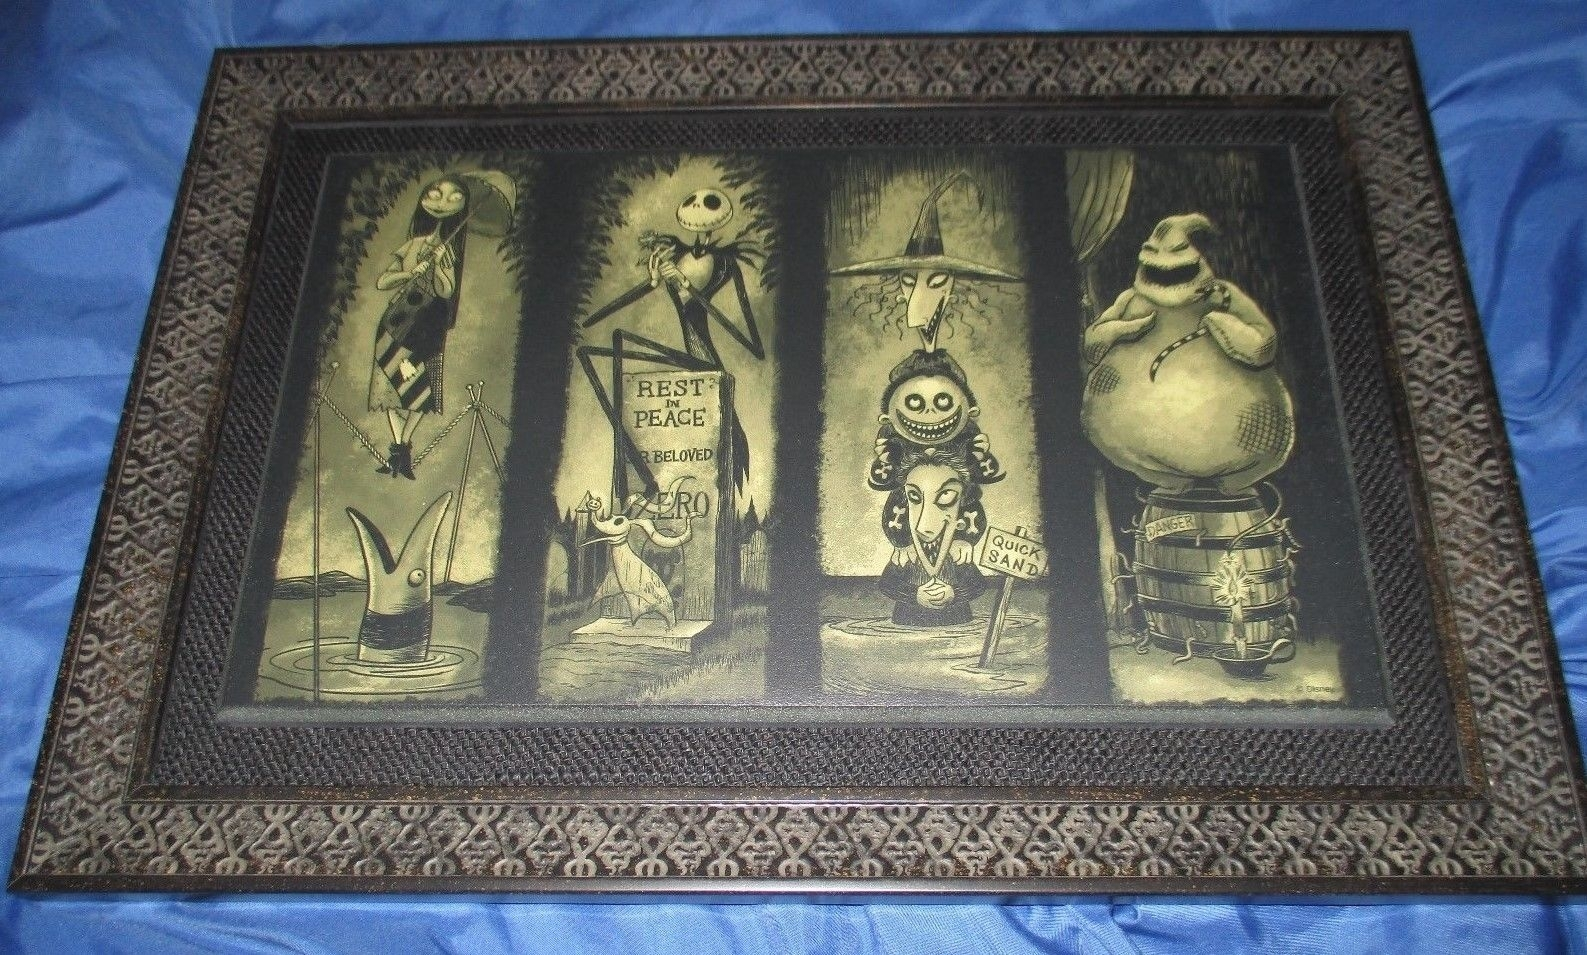 Haunted Mansion Framed Art Print ~Nightmare Before Christmas Throughout Most Popular Christmas Framed Art Prints (Gallery 2 of 15)